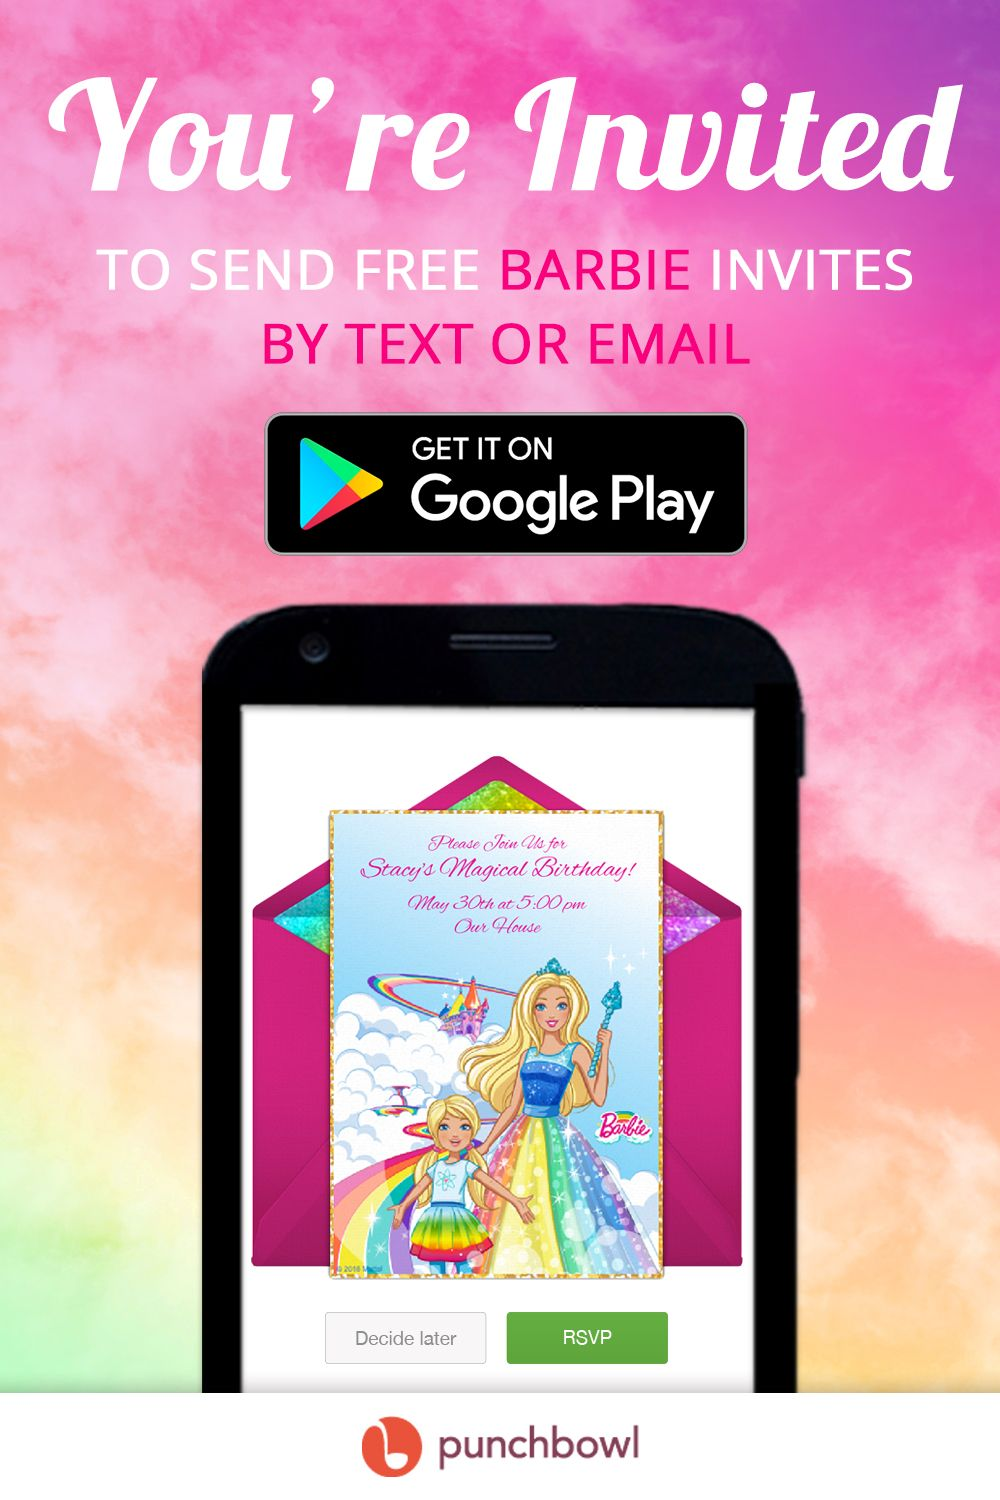 Send Free Barbie Invitations By Text Message Right From Your Phone And Get RSVPs Instantly With